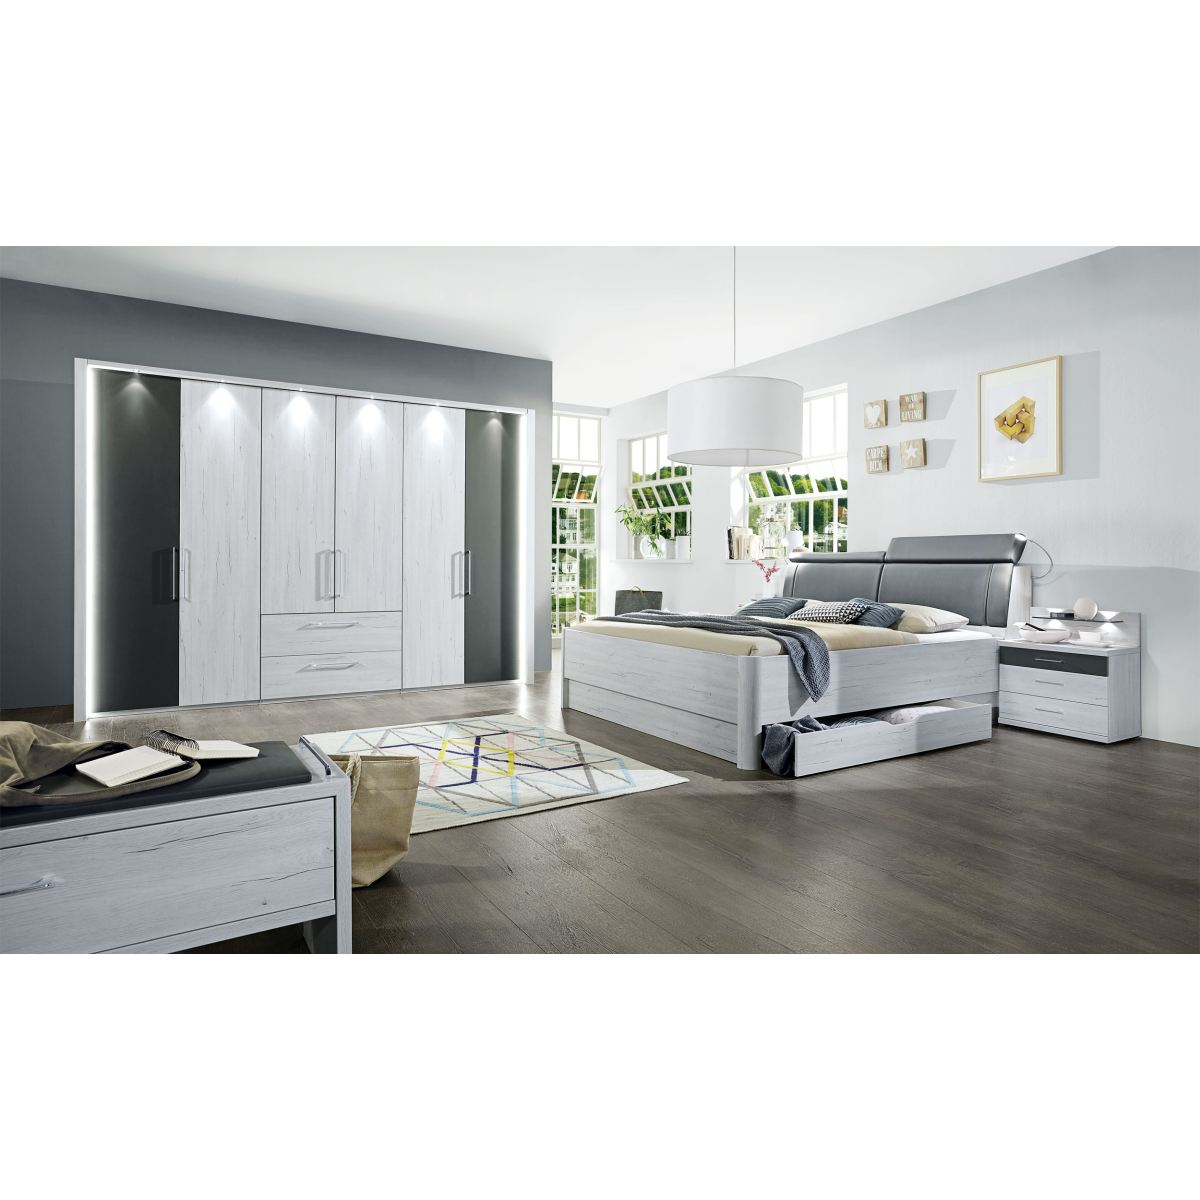 vito schlafzimmer kanada wei eiche nachbildung porta. Black Bedroom Furniture Sets. Home Design Ideas